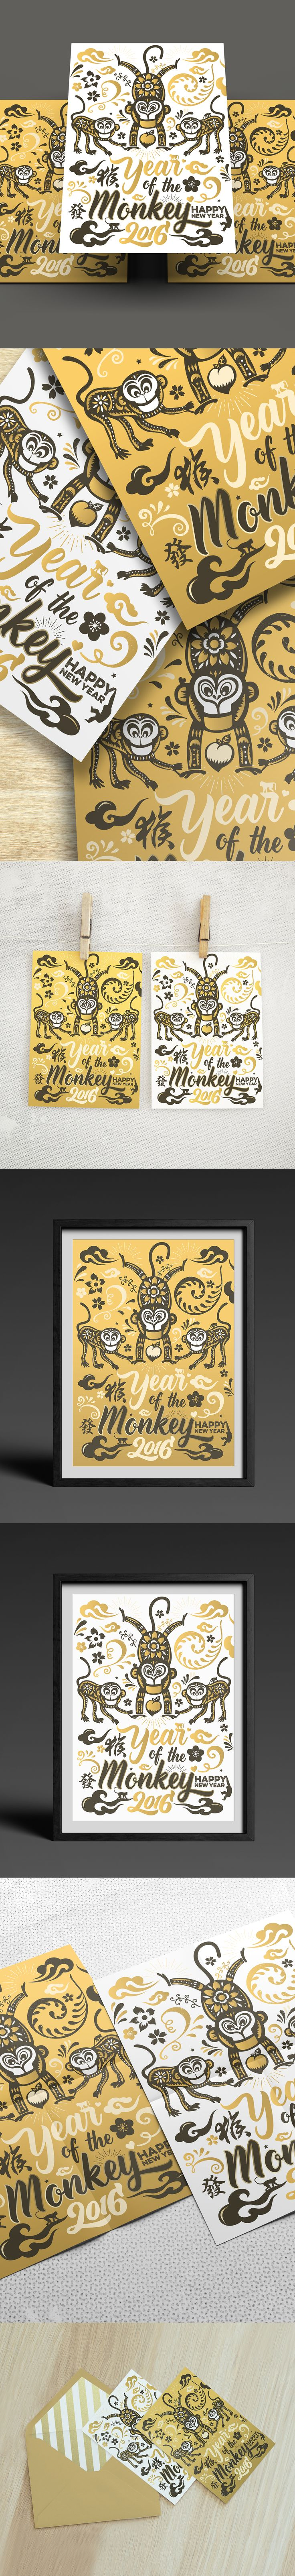 Chinese new year 2016 Year of the Monkey This is a Vector Illustrations of a Chinese new year 2016 Year of the Monkey which include 2 different design poster / card. This Chinese new year 2015 Year of the monkey can be easily used in Adobe and illustrator, Fully layered, Smart Objects and it VECTOR ! Using gold and black theme for this year concept in a typography style. Hope you guys like it! #monkey #chinesenewyear #newyear #chinesemonkey #happynewyear #monkey2016